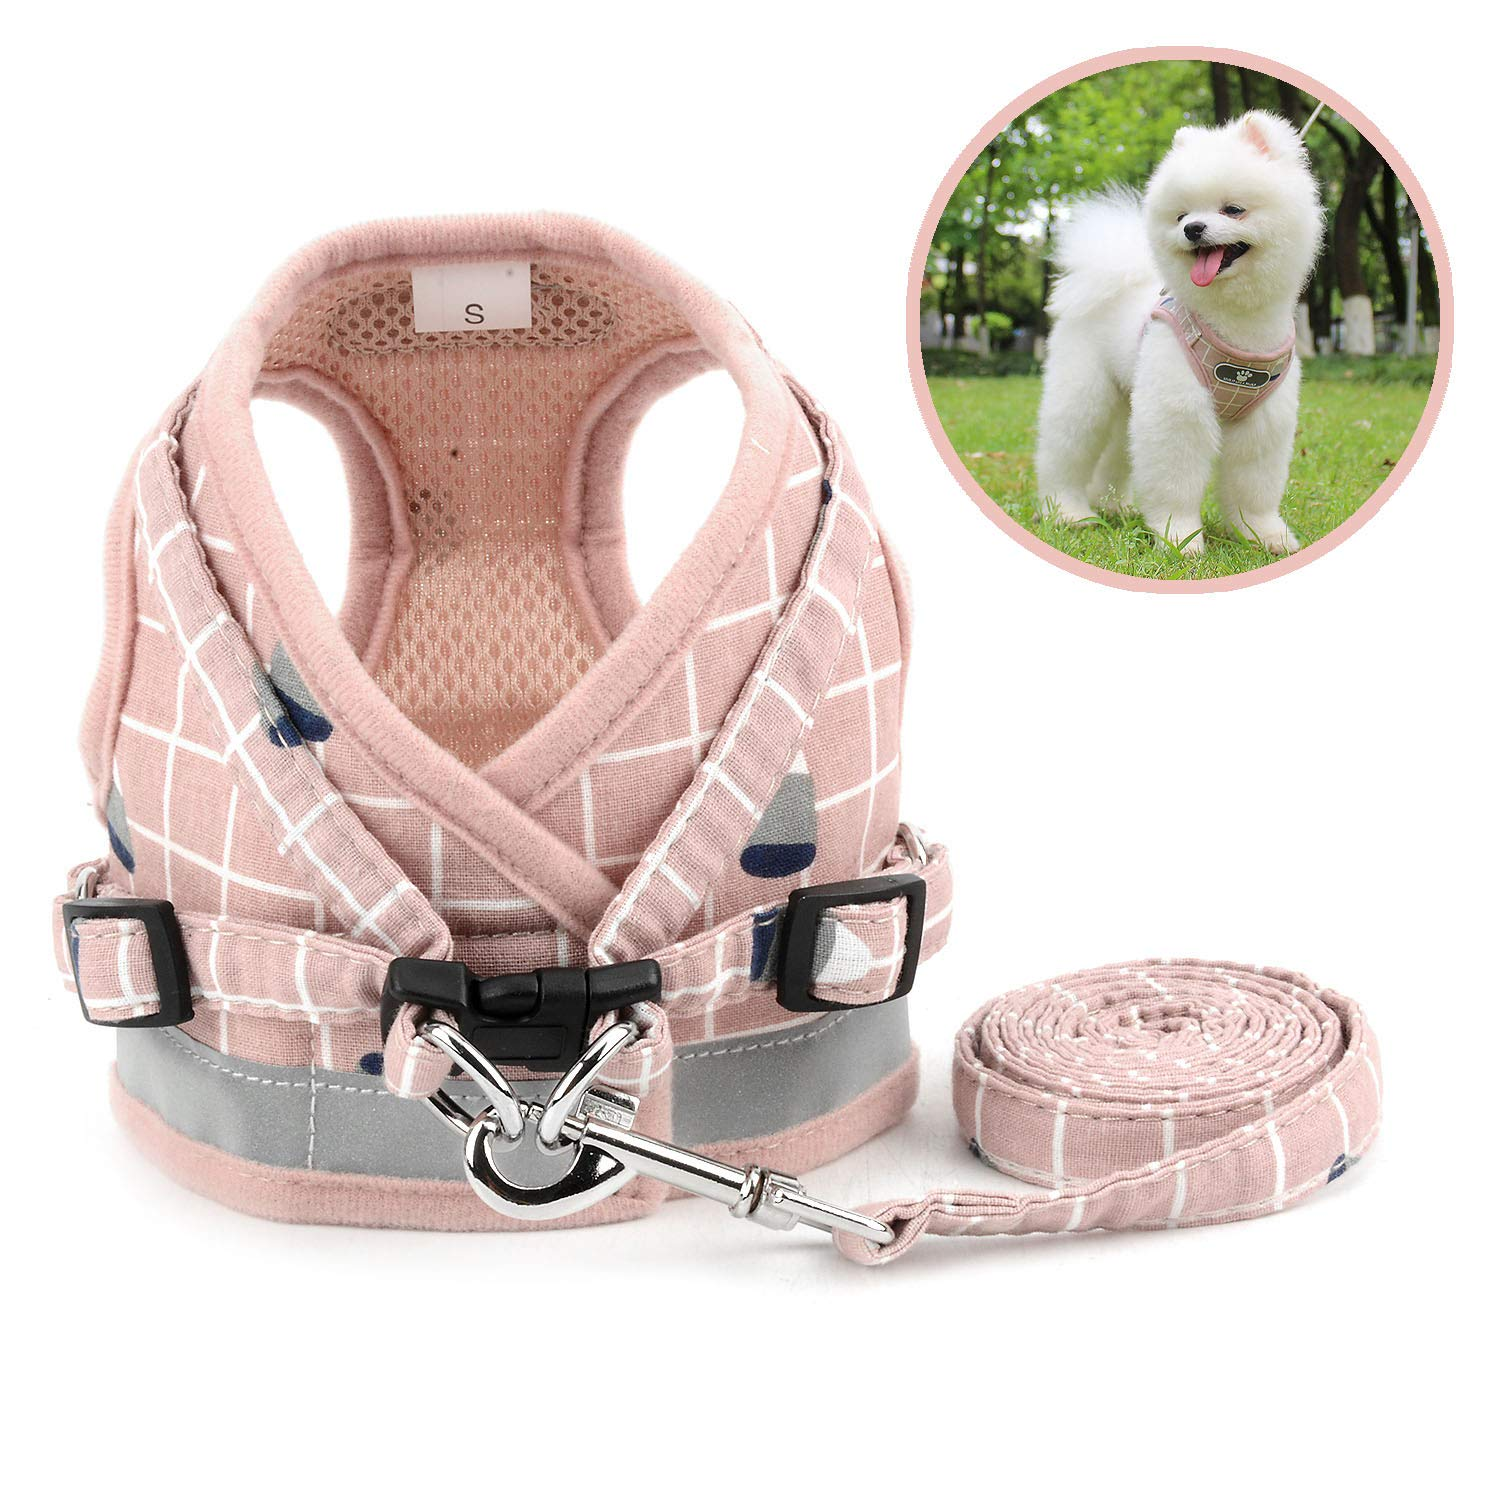 Zunea No Pull Small Dog Harness and Leash Set Adjustable Reflective Step-in Chihuahua Vest Harnesses Mesh Padded Plaid Escape Proof Walking Puppy Jacket for Boy Girl Pet Dogs Cats Pink XS